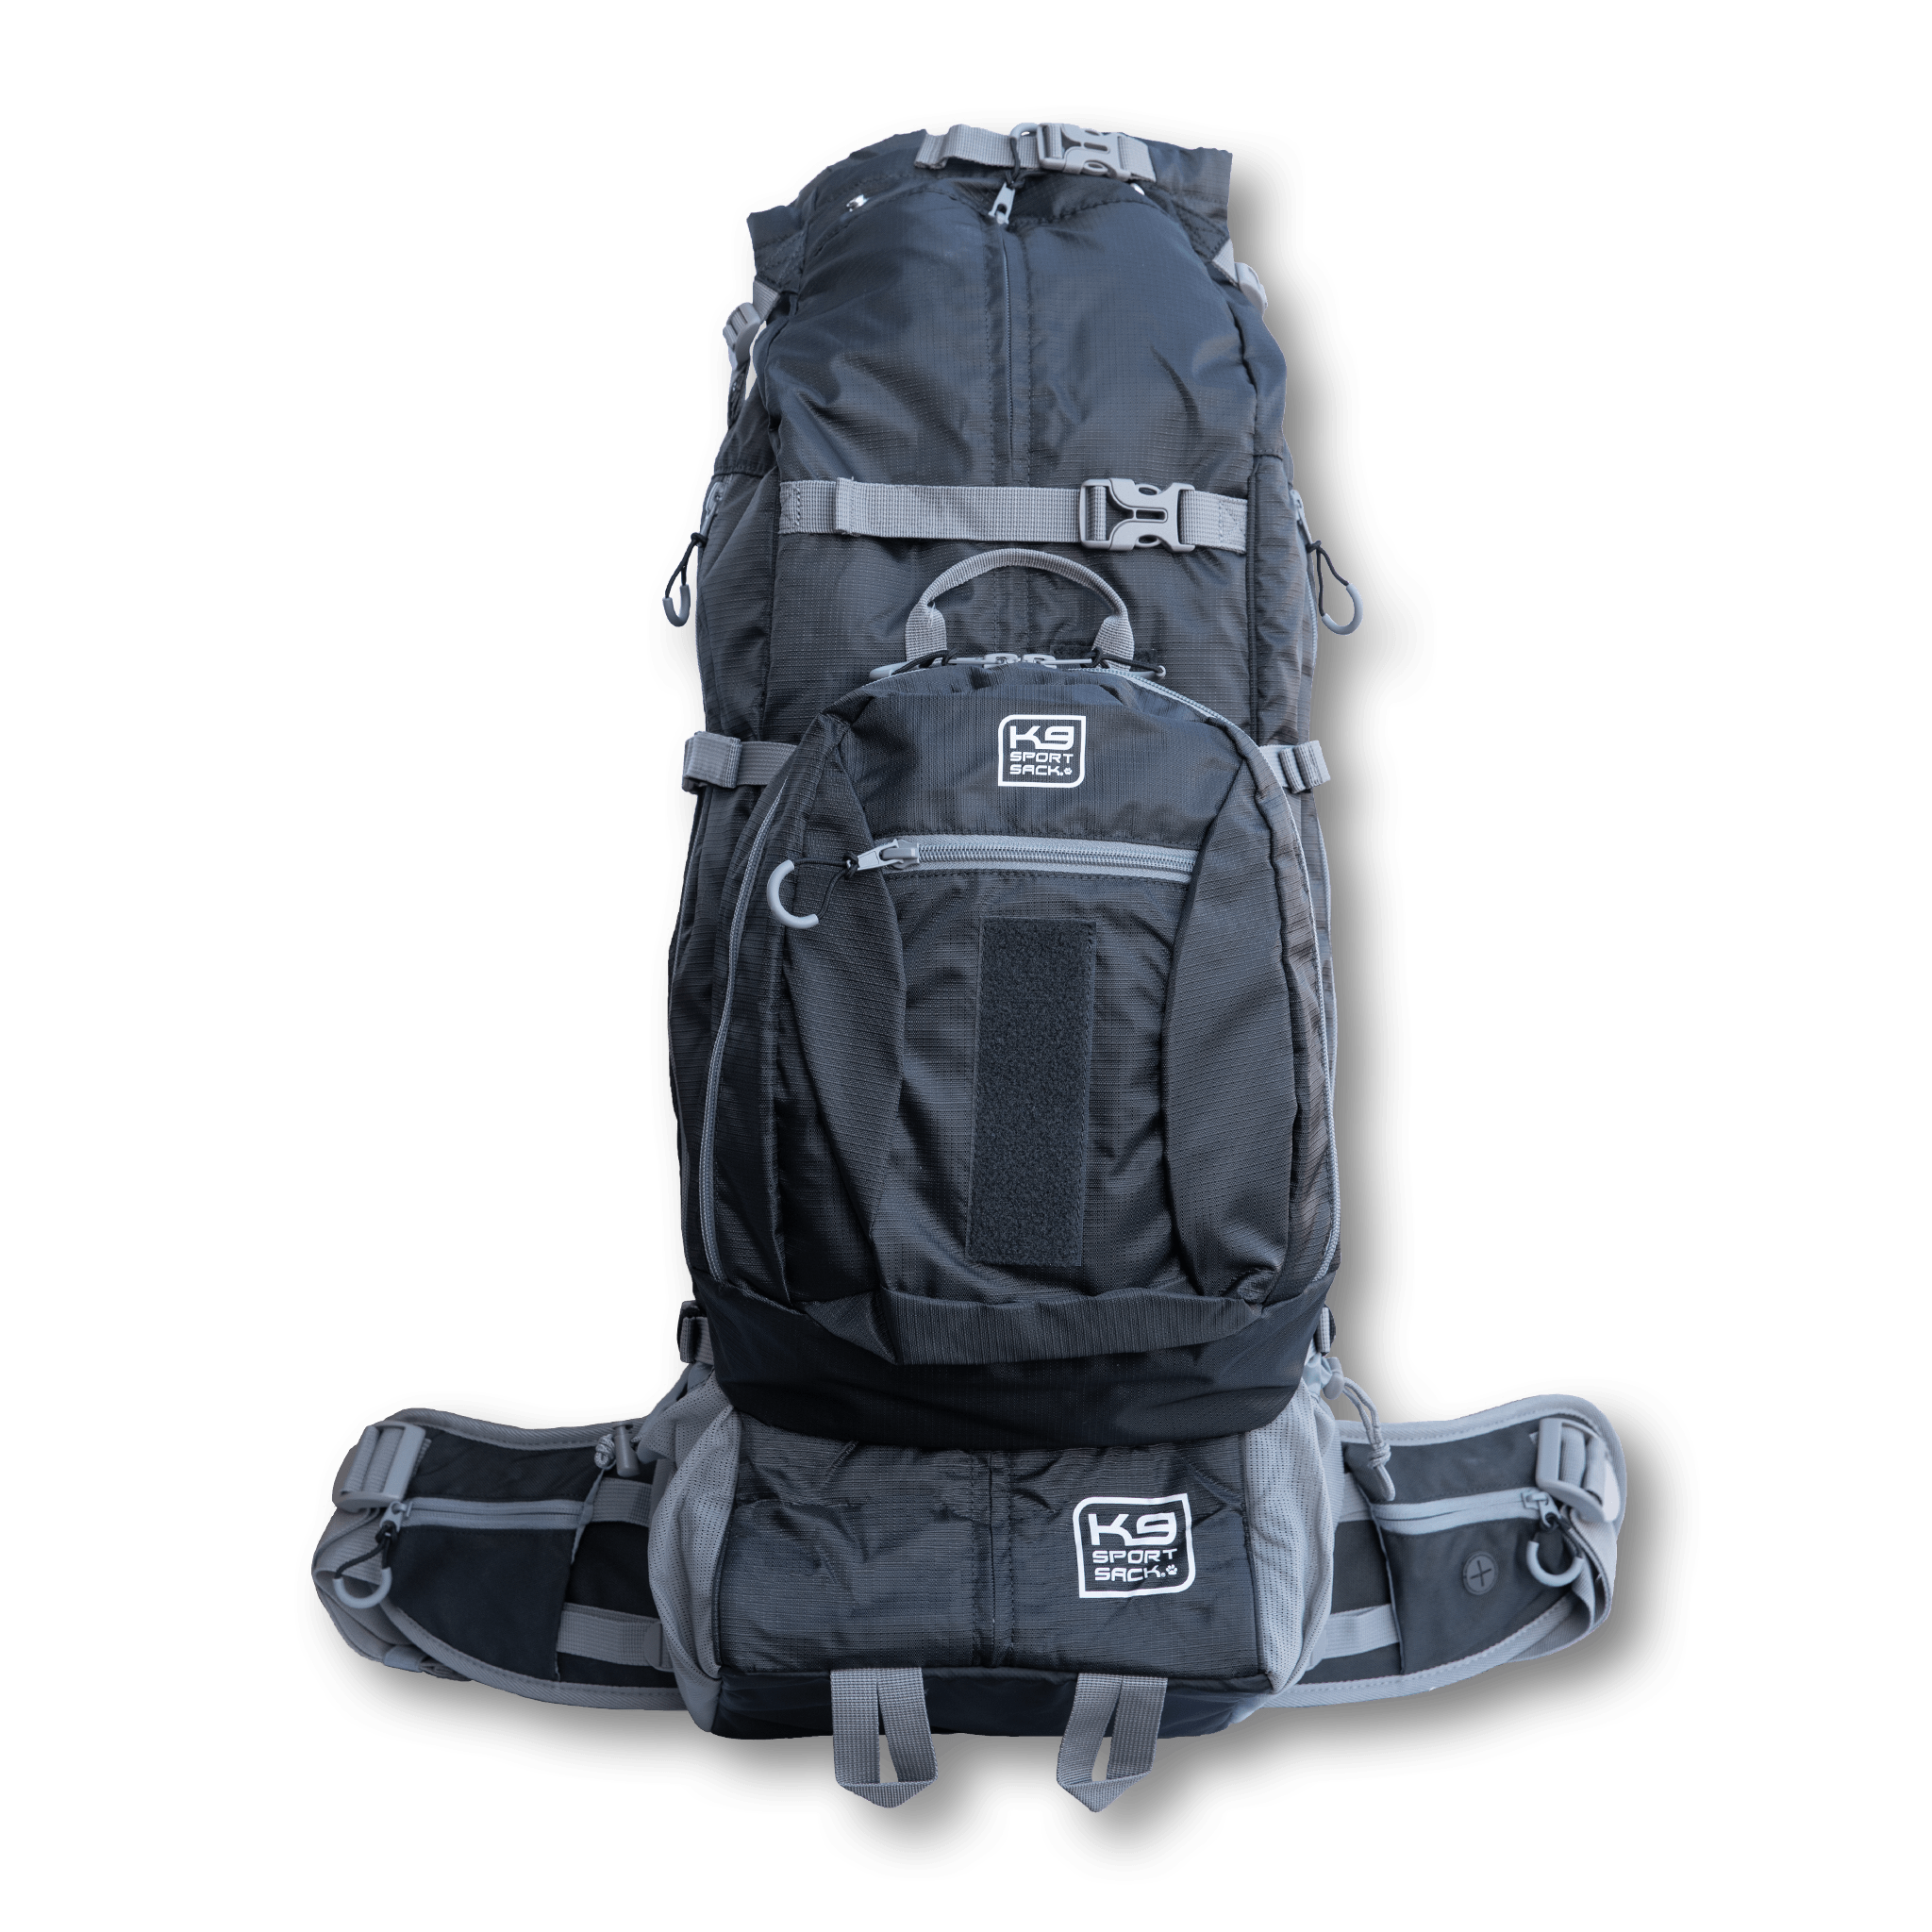 Klearance Rover 2 | Big Dog Carrier & Backpacking Pack